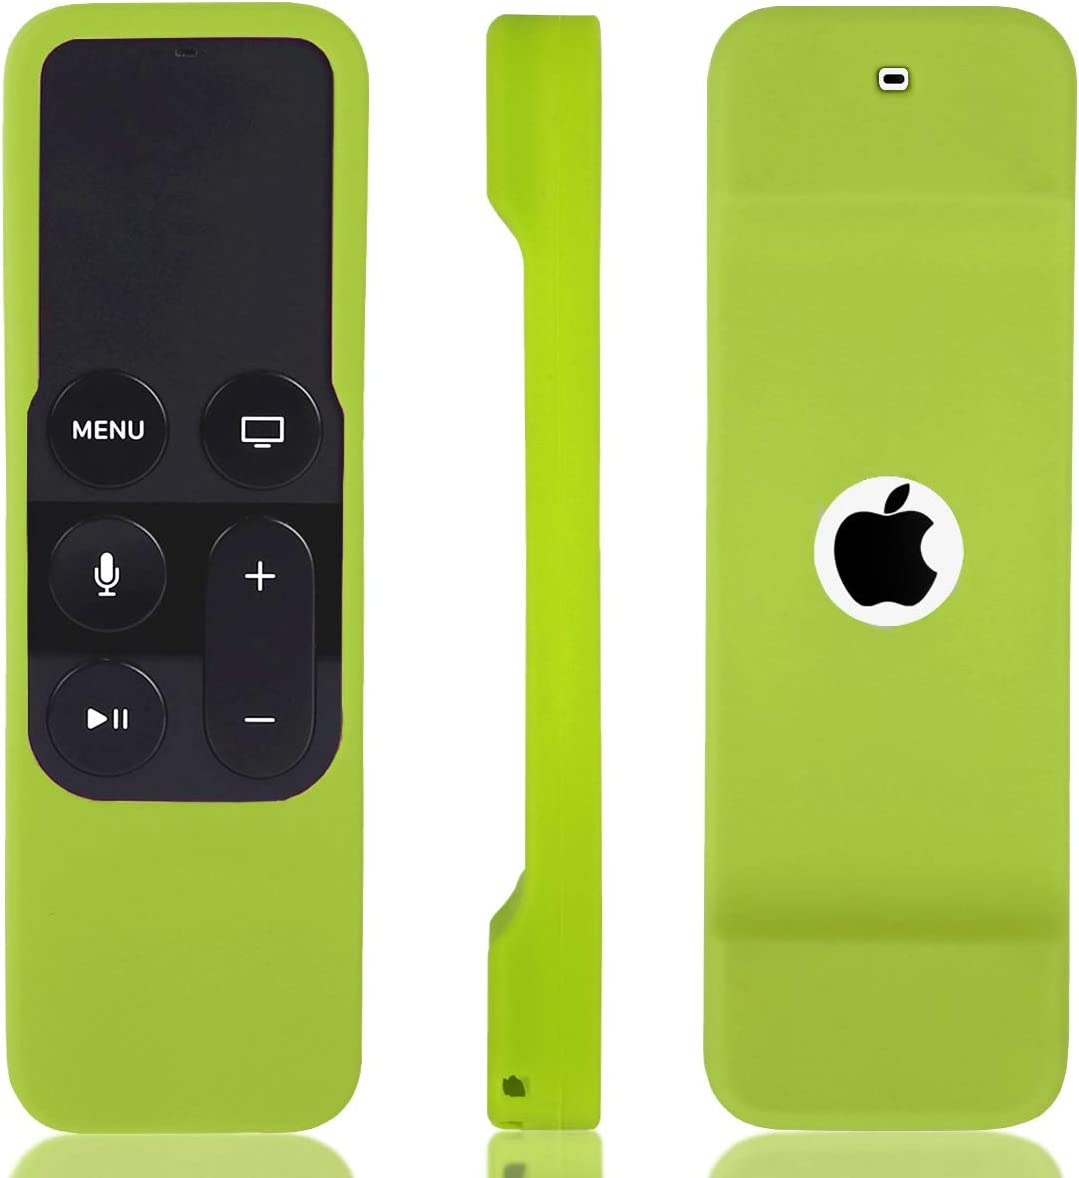 HONONJO Remote Case for Apple TV 4th Generation, Light Weight Anti Slip Shock Proof Silicone Remote Cover Case for Apple TV 4th Gen Siri Remote Controller(Green